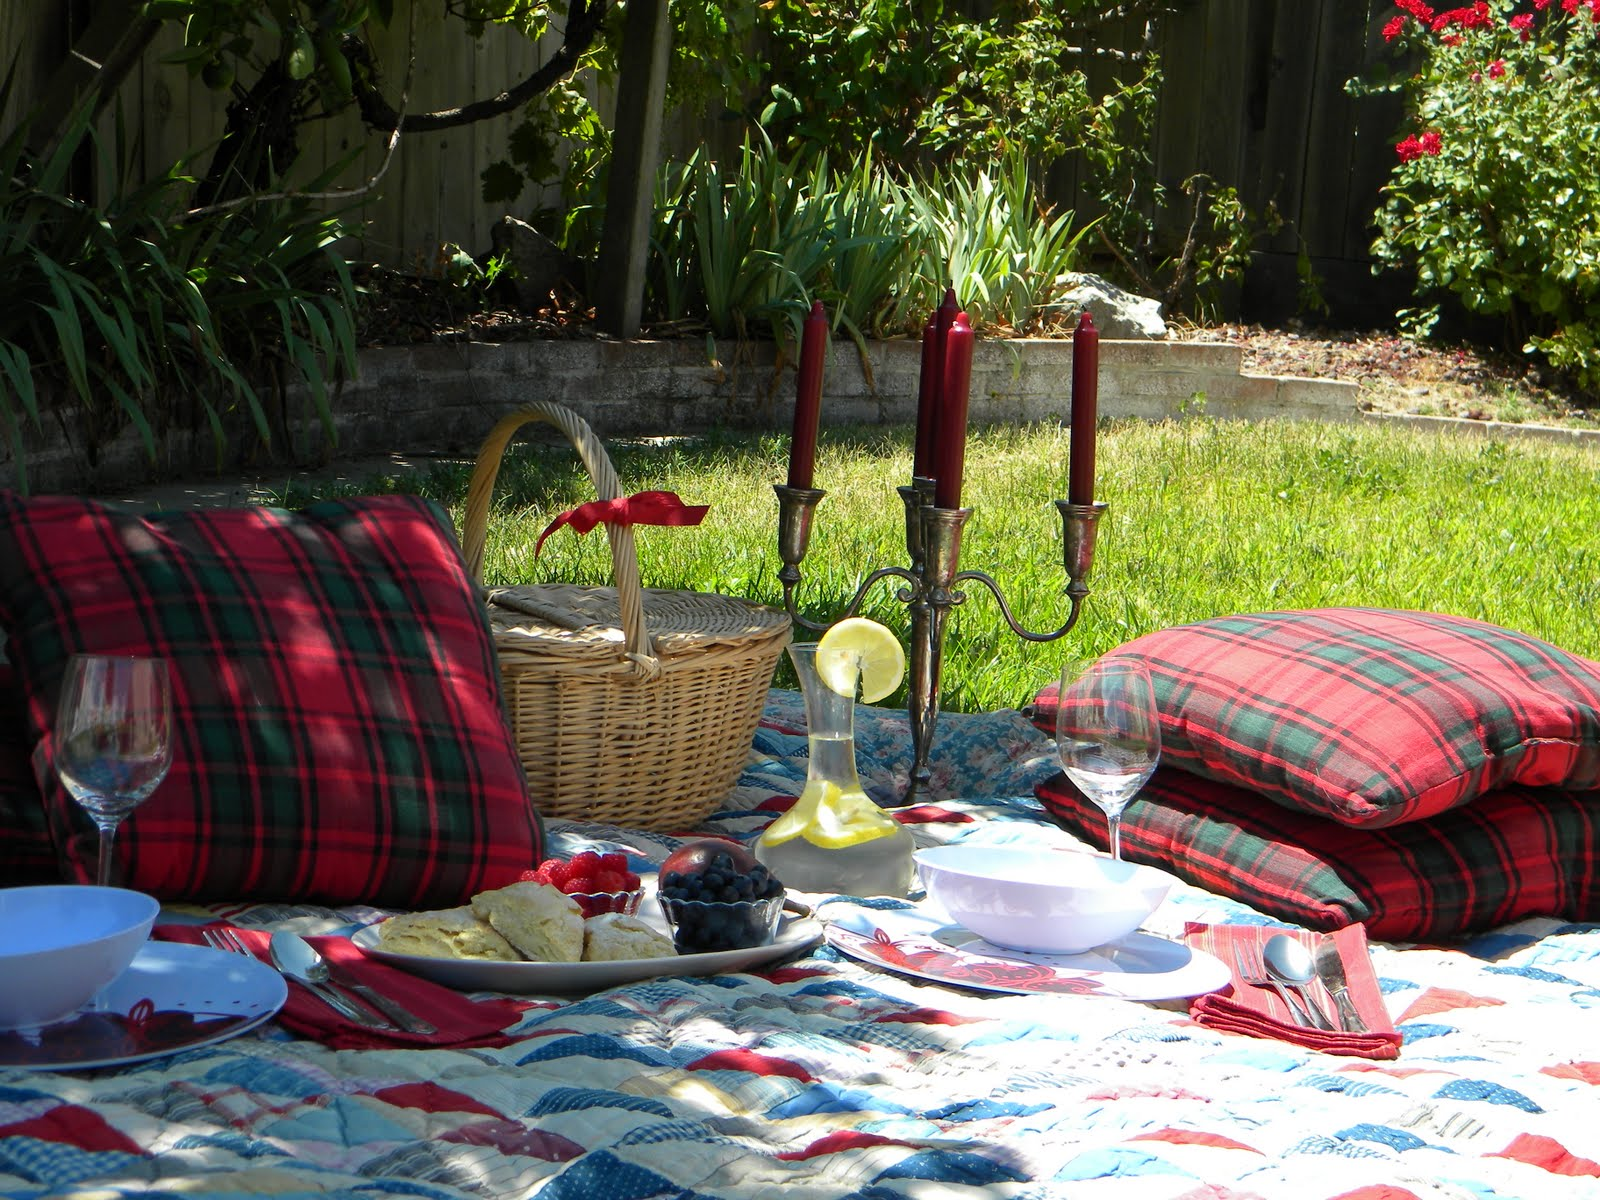 Romantic Backyard Picnic Ideas : Romantic Picnic Setting The picnic goodies